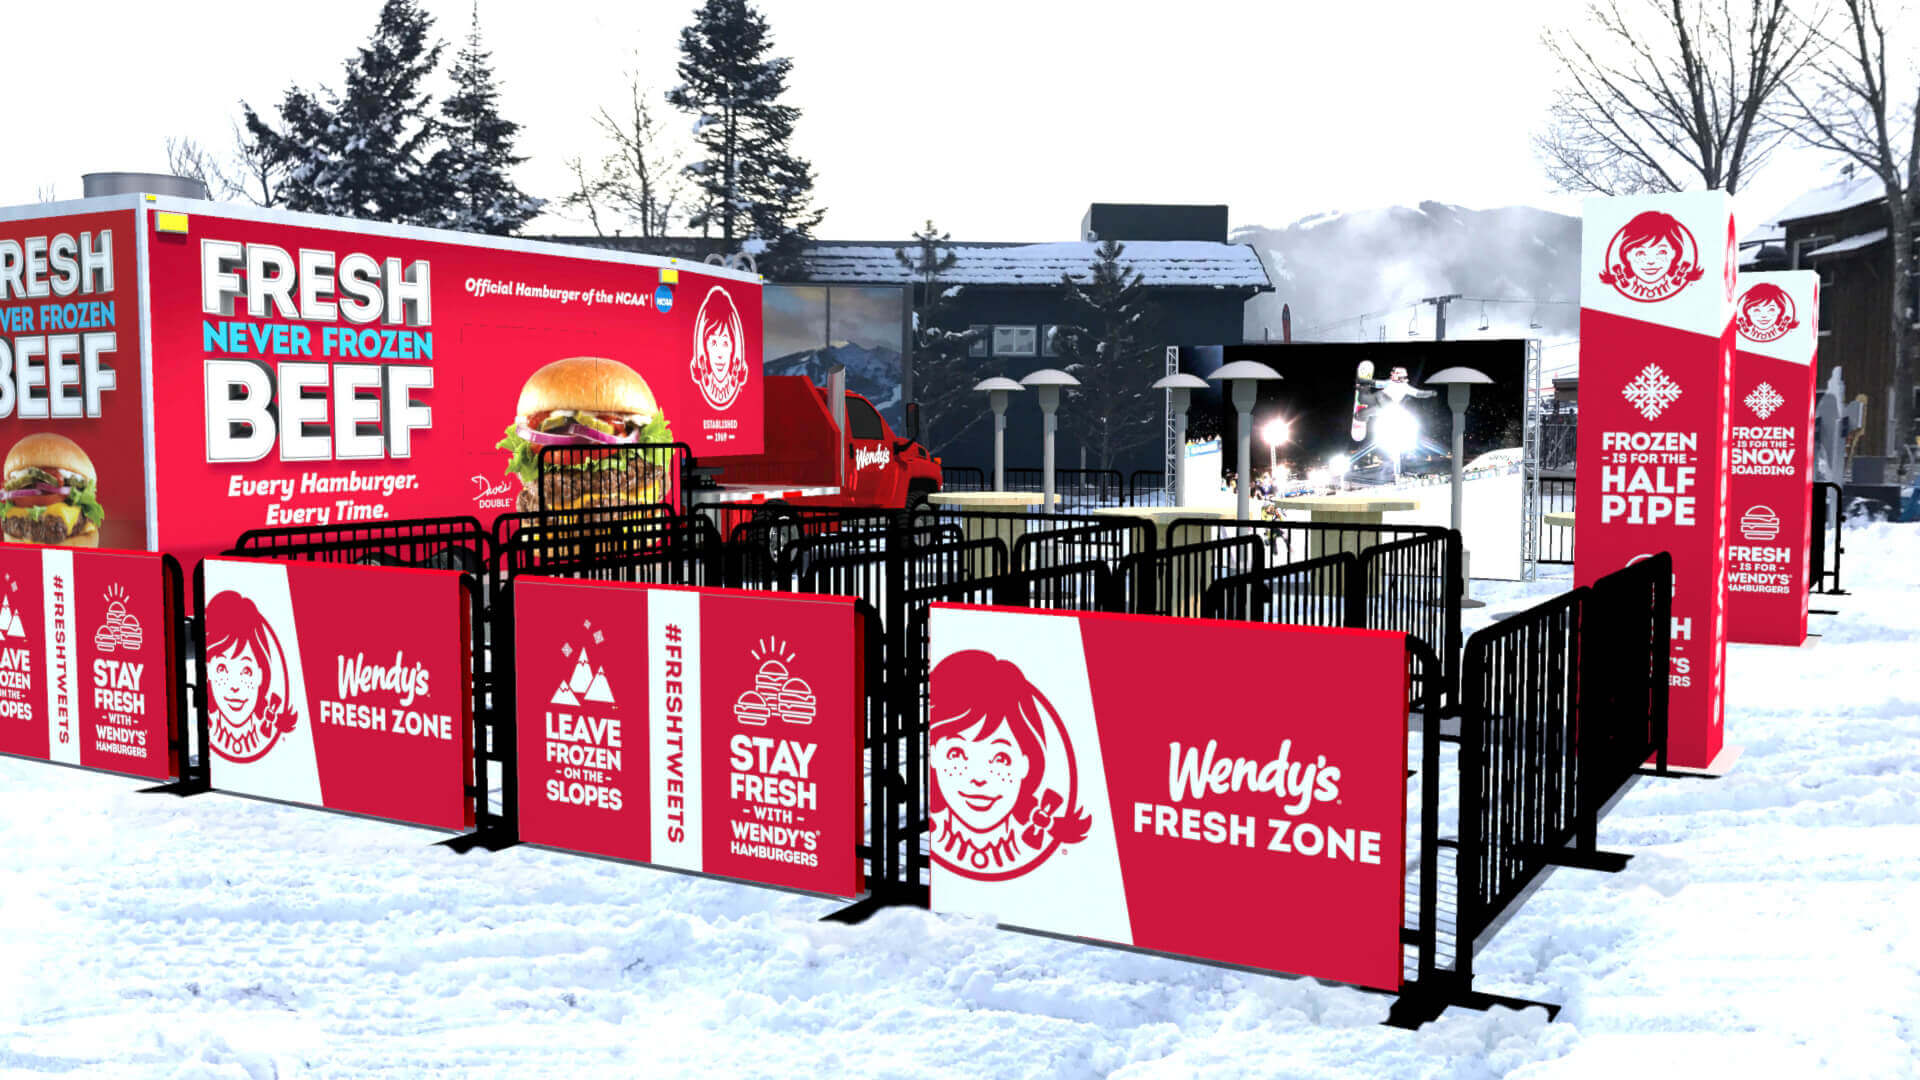 The Marketing Arm elevated Wendy's influence at the 2019 Winter X Games across its title sponsorships, on-course signage, food truck experiential activation, and photo experience high in the Colorado Rockies.